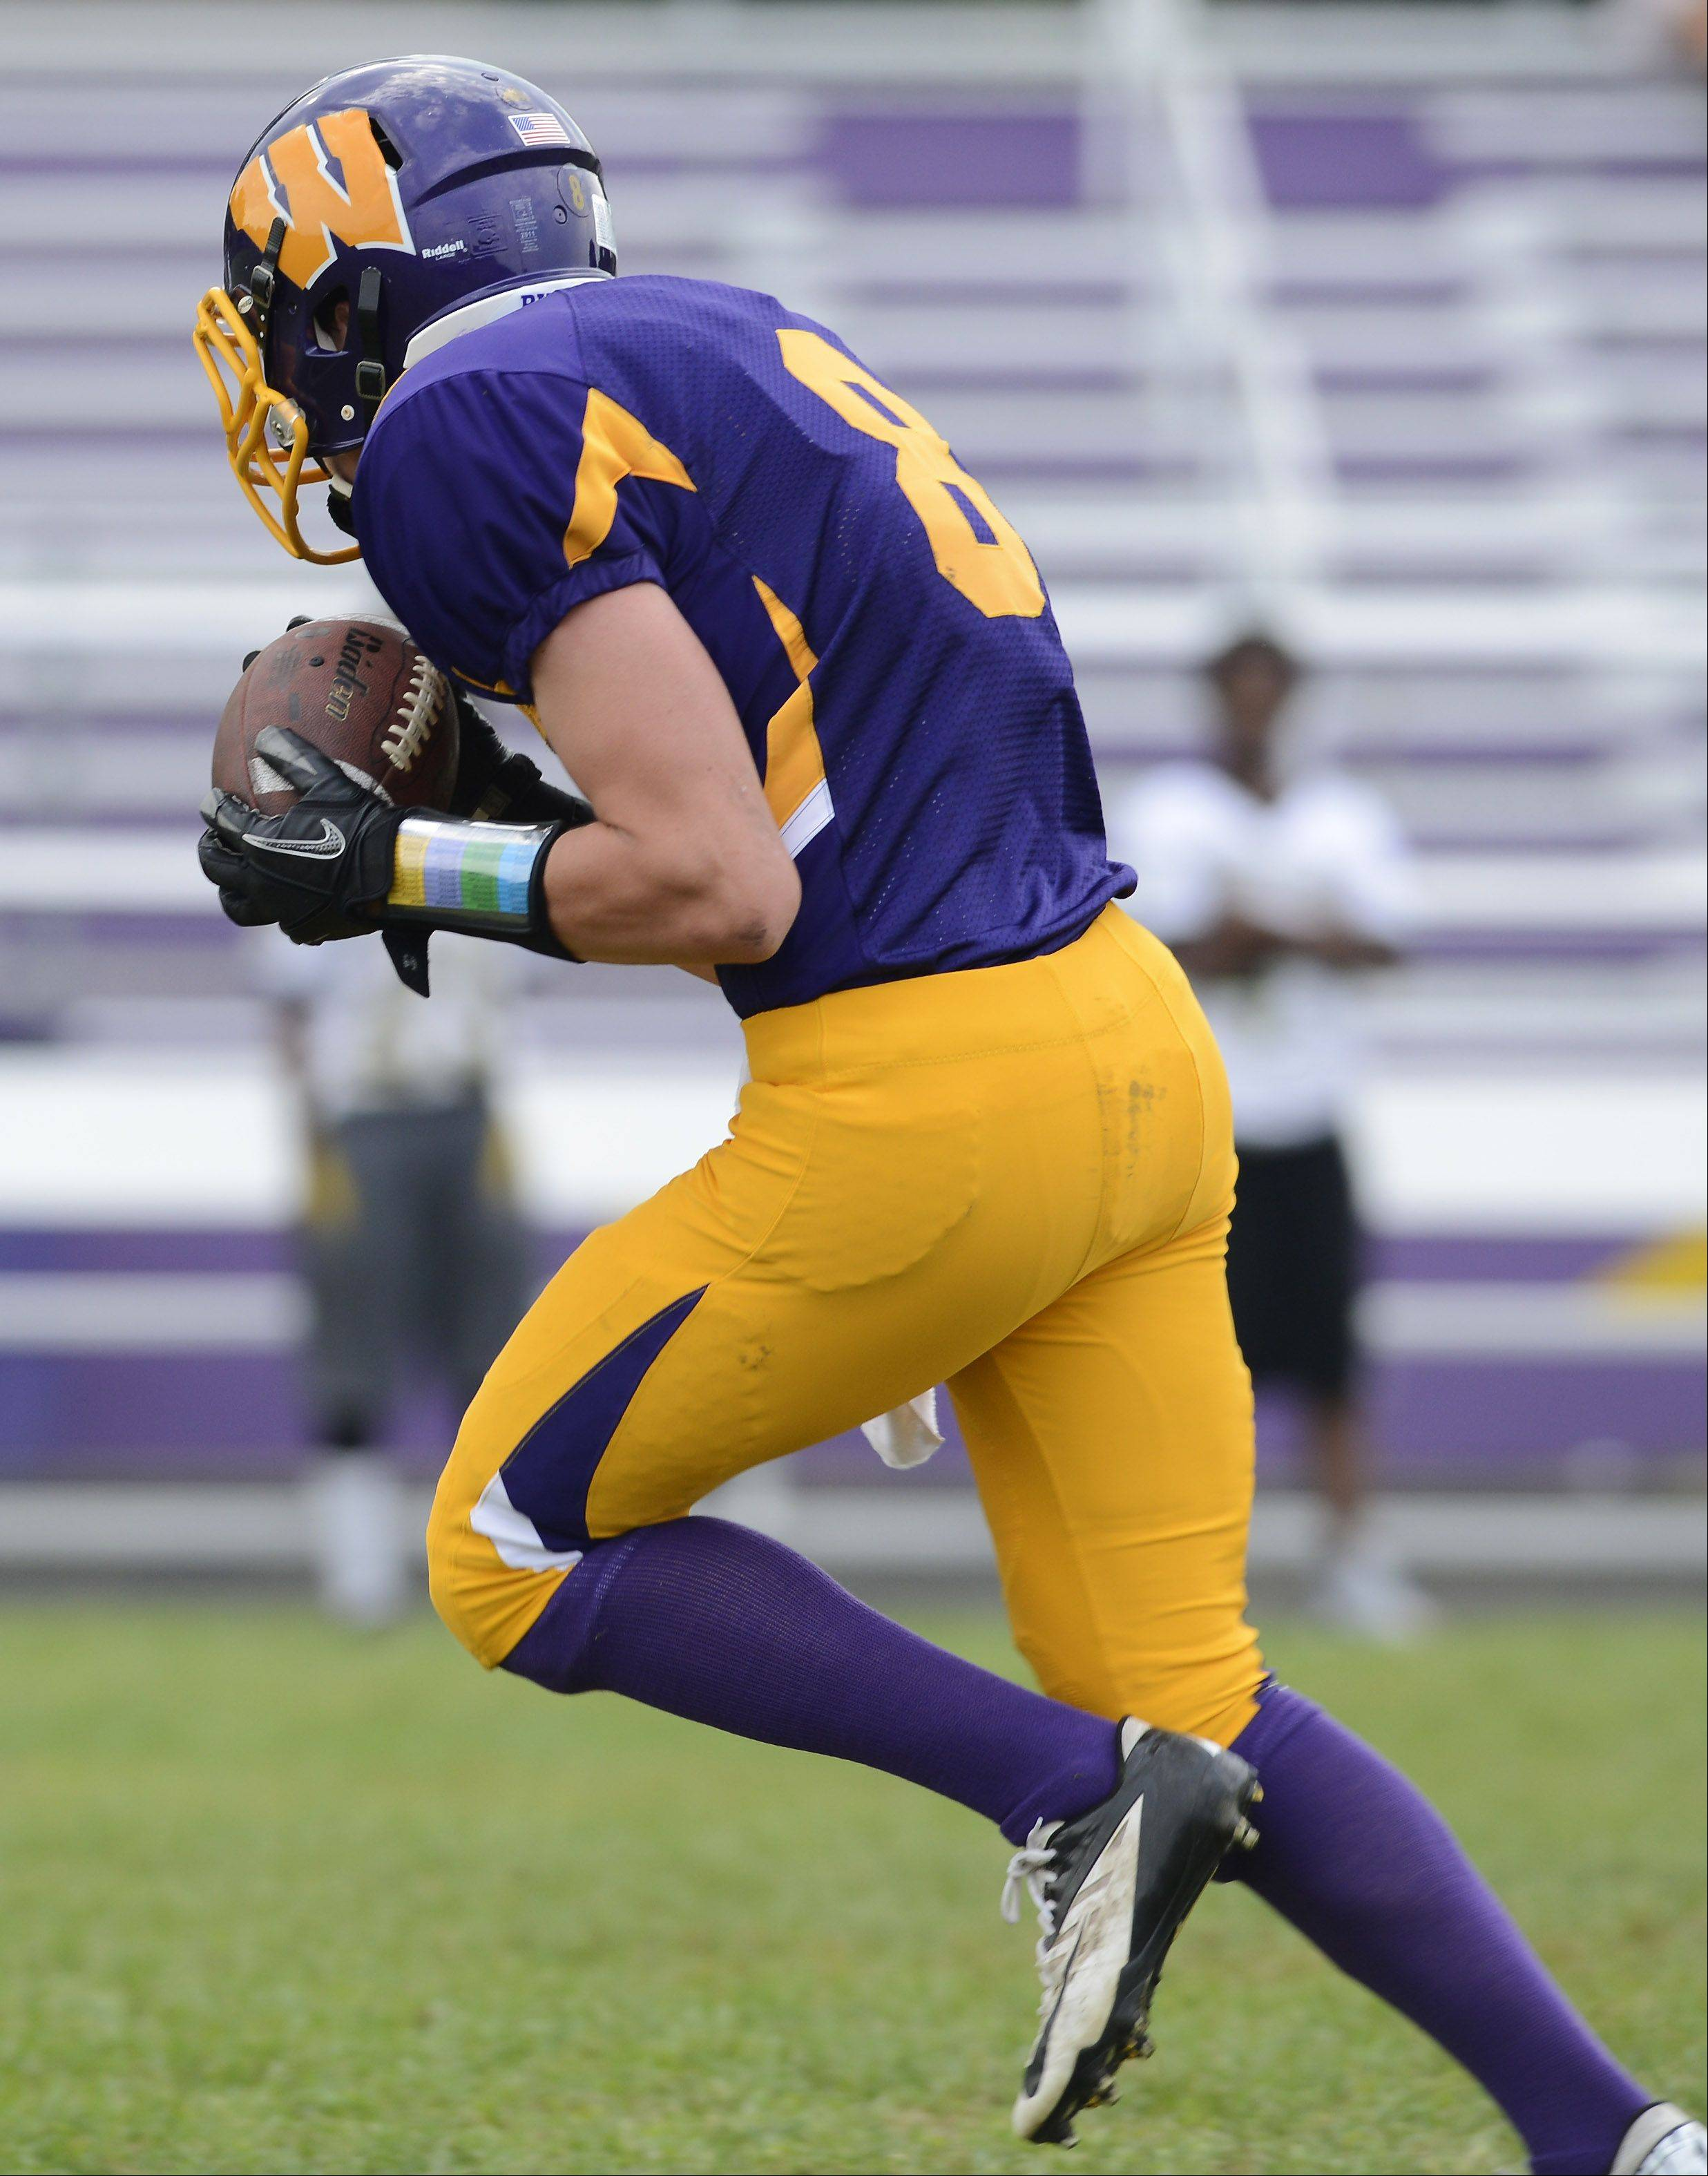 Wauconda's Alex Schwickrath makes a first-quarter reception that went for a touchdown during Saturday's game against Orr.